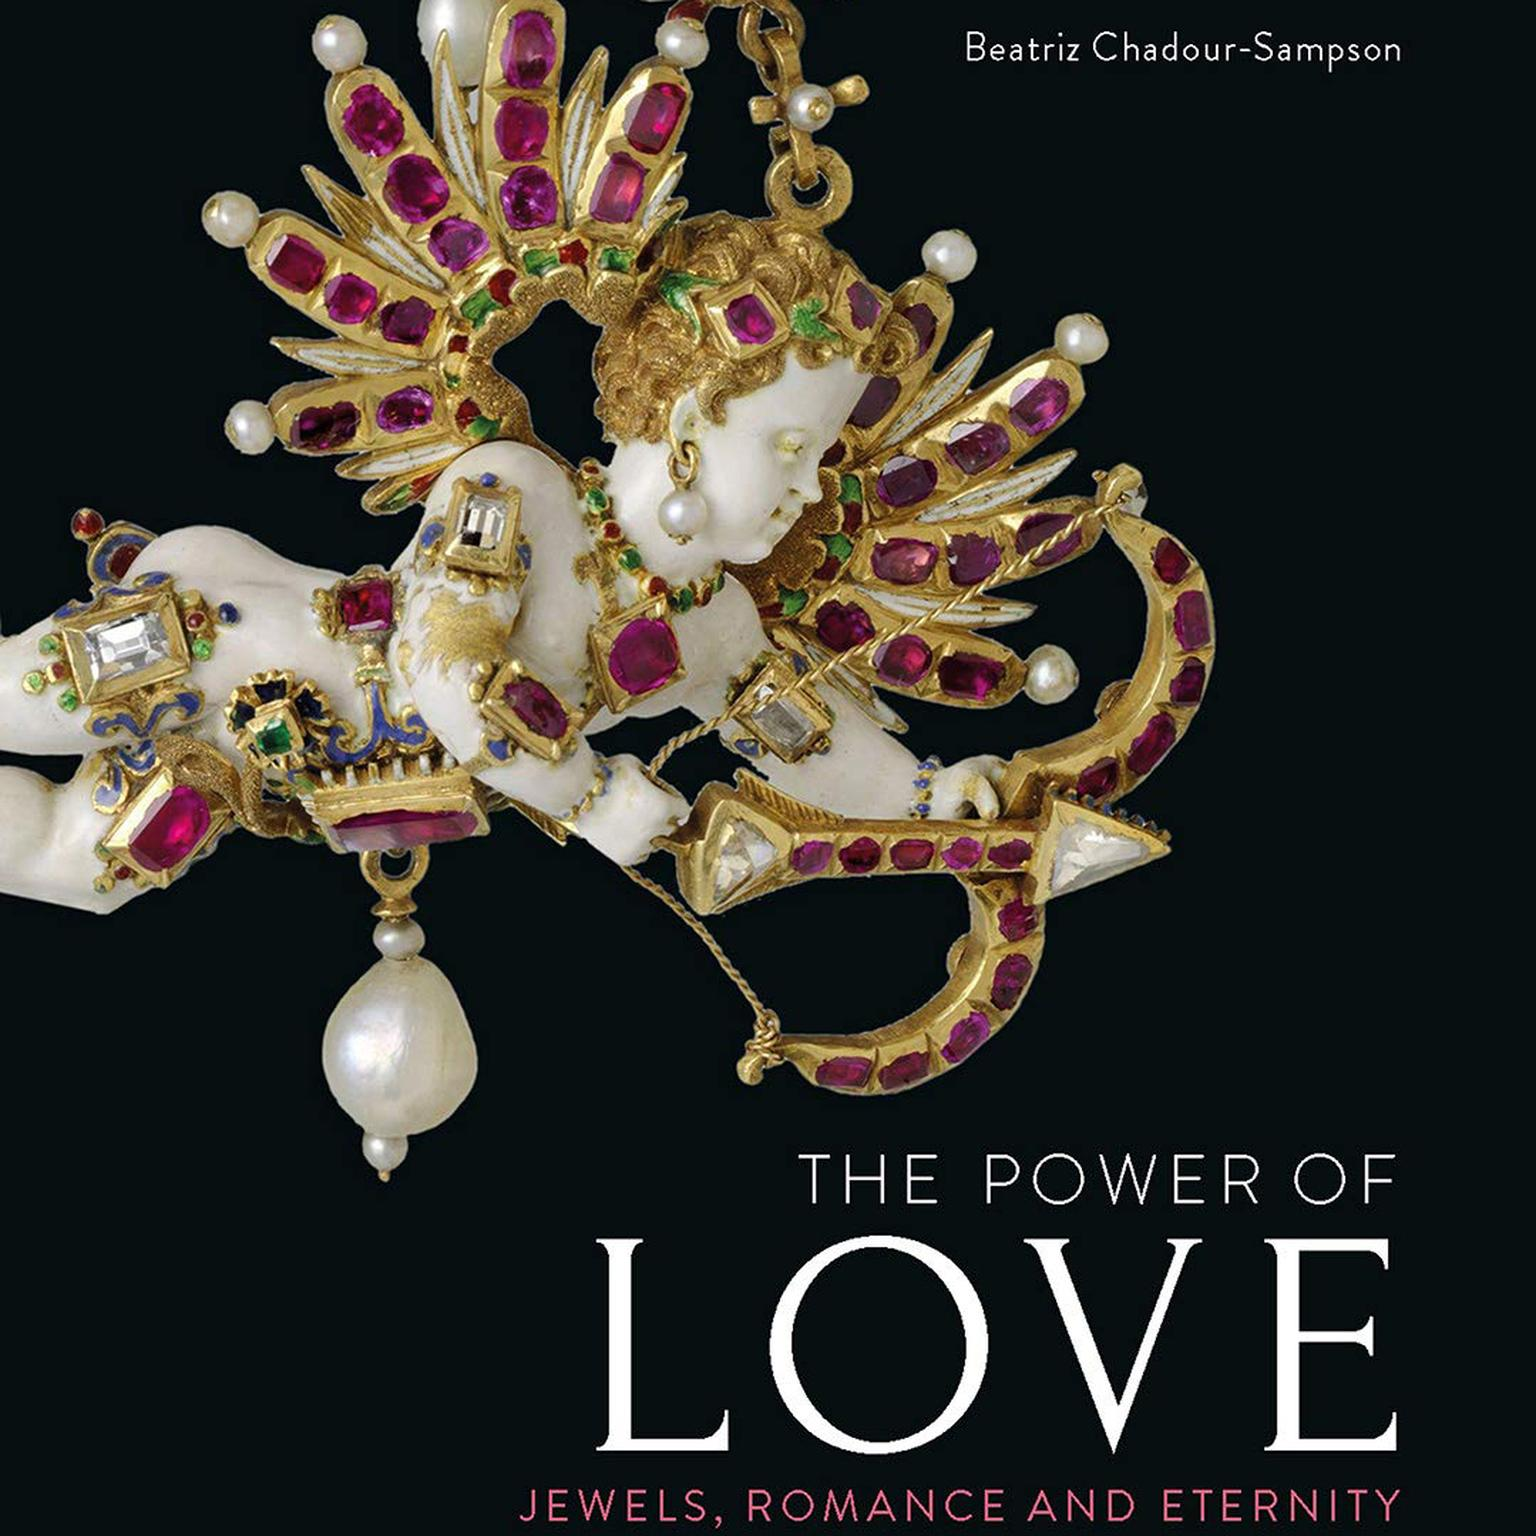 The power of Love by Baetriz Chadour-Sampson